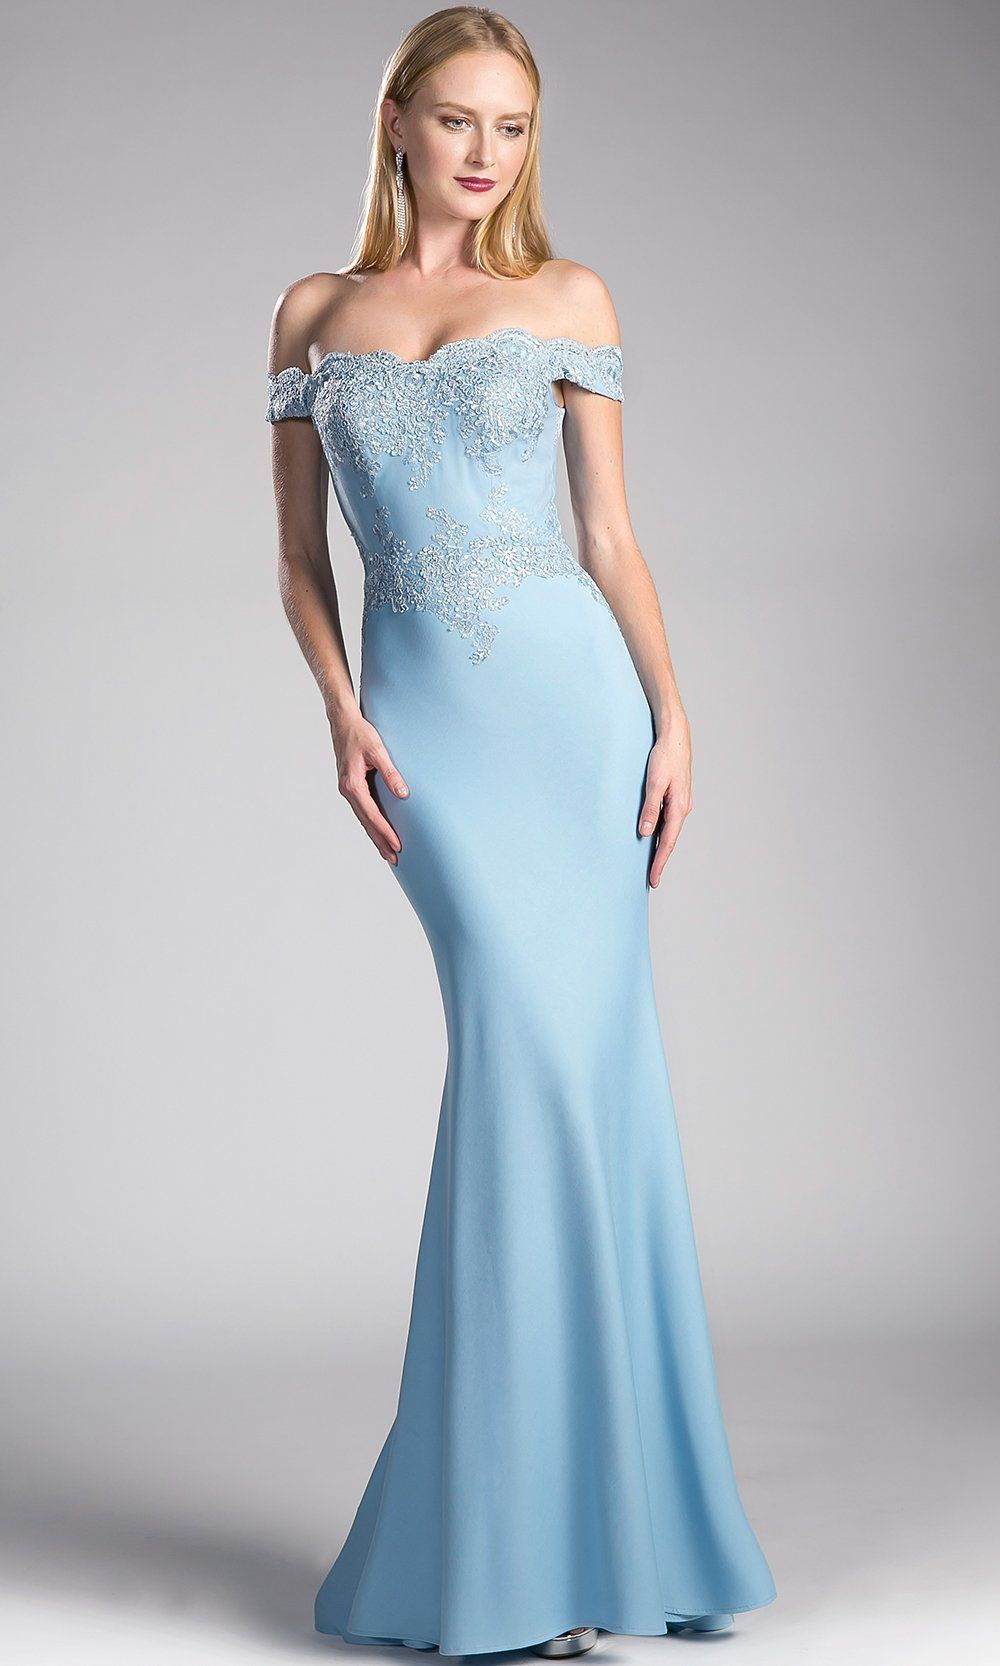 57ec3389706 Long light blue off shoulder fitted dress with lace top. This ice blue  formal lace sleek and sexy gown is perfect for sky blue off shoulder  bridesmaid ...